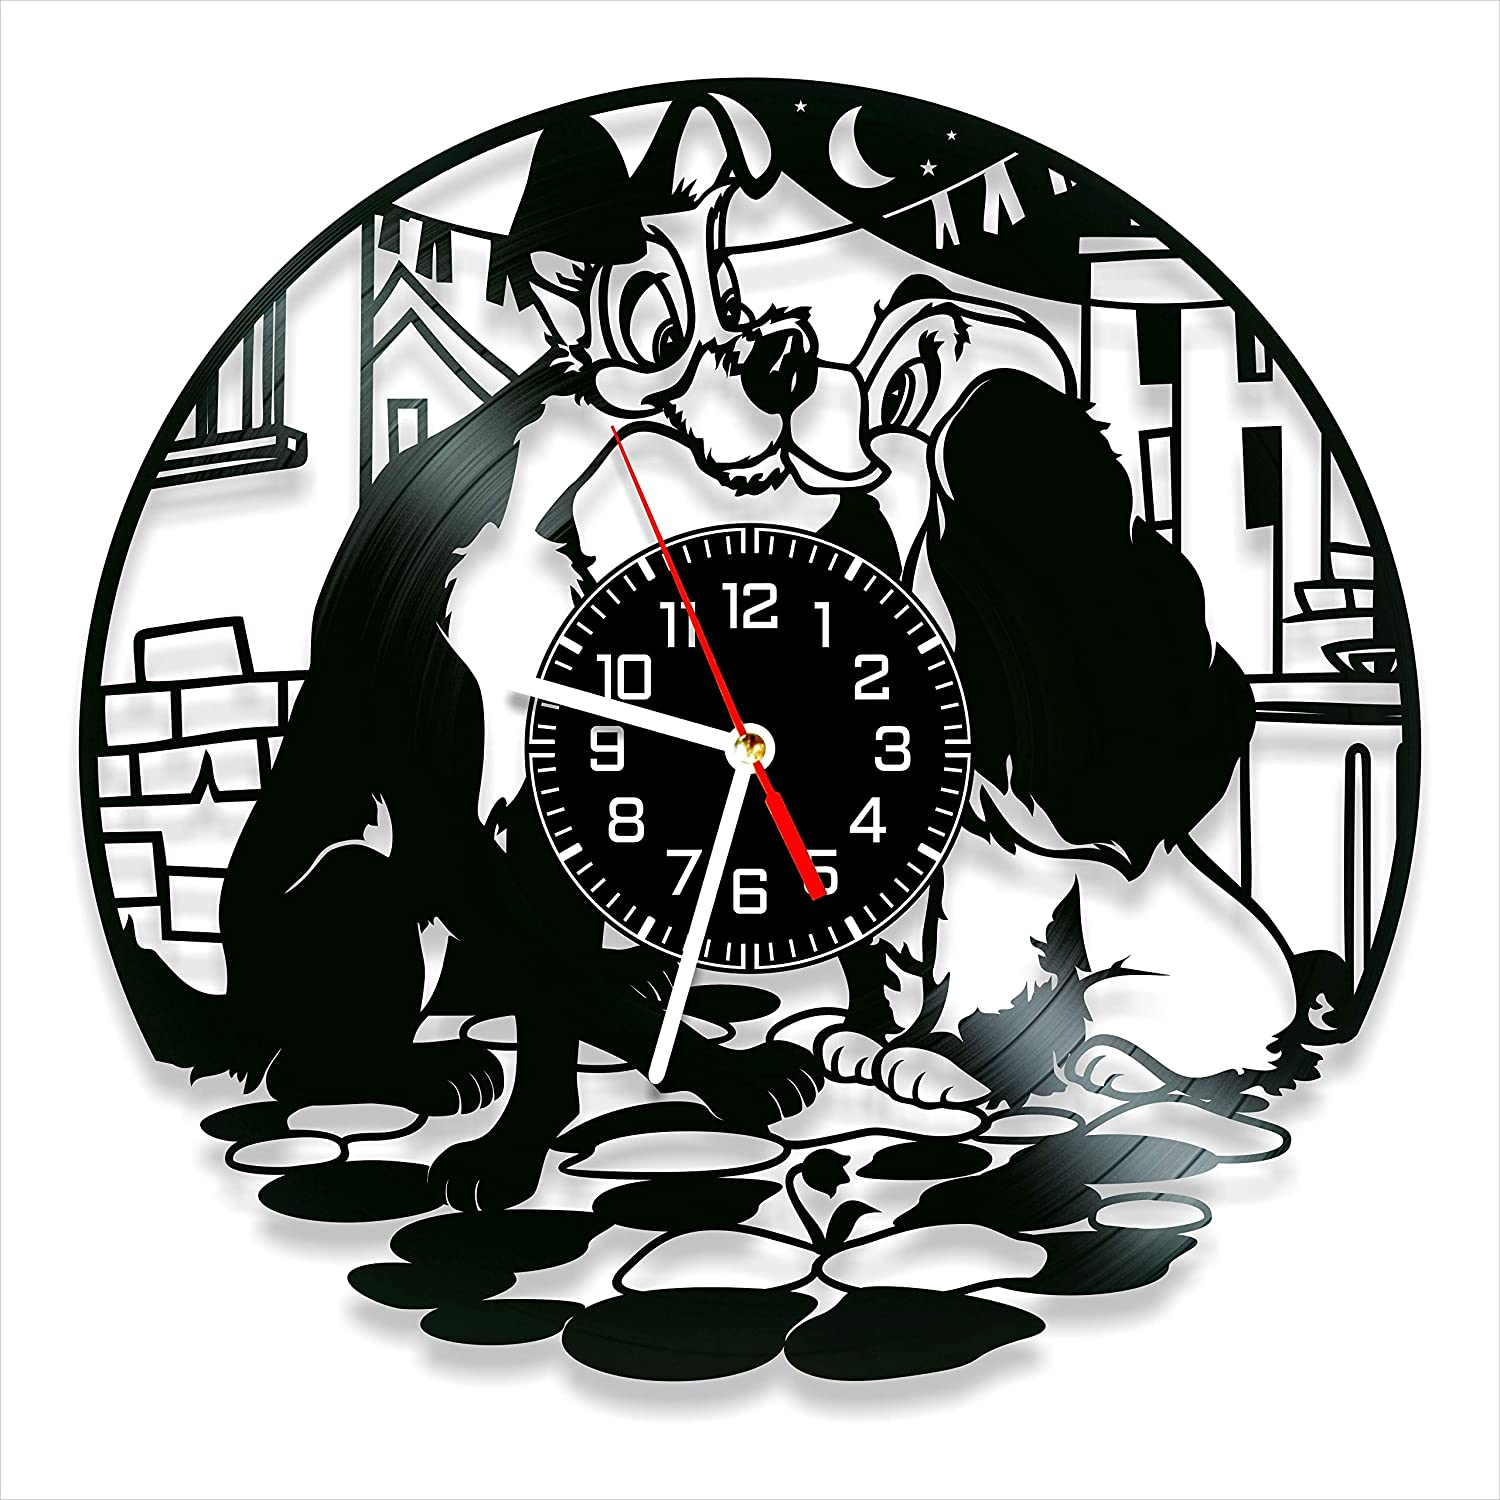 Lady and The Tramp Vinyl Clock, Lady and The Tramp Wall Clock 12 inch (30 cm), Original Gifts for Fans Lady and The Tramp, The Best Home Decorations, Unique Art Decor, Original Idea for Home Decor